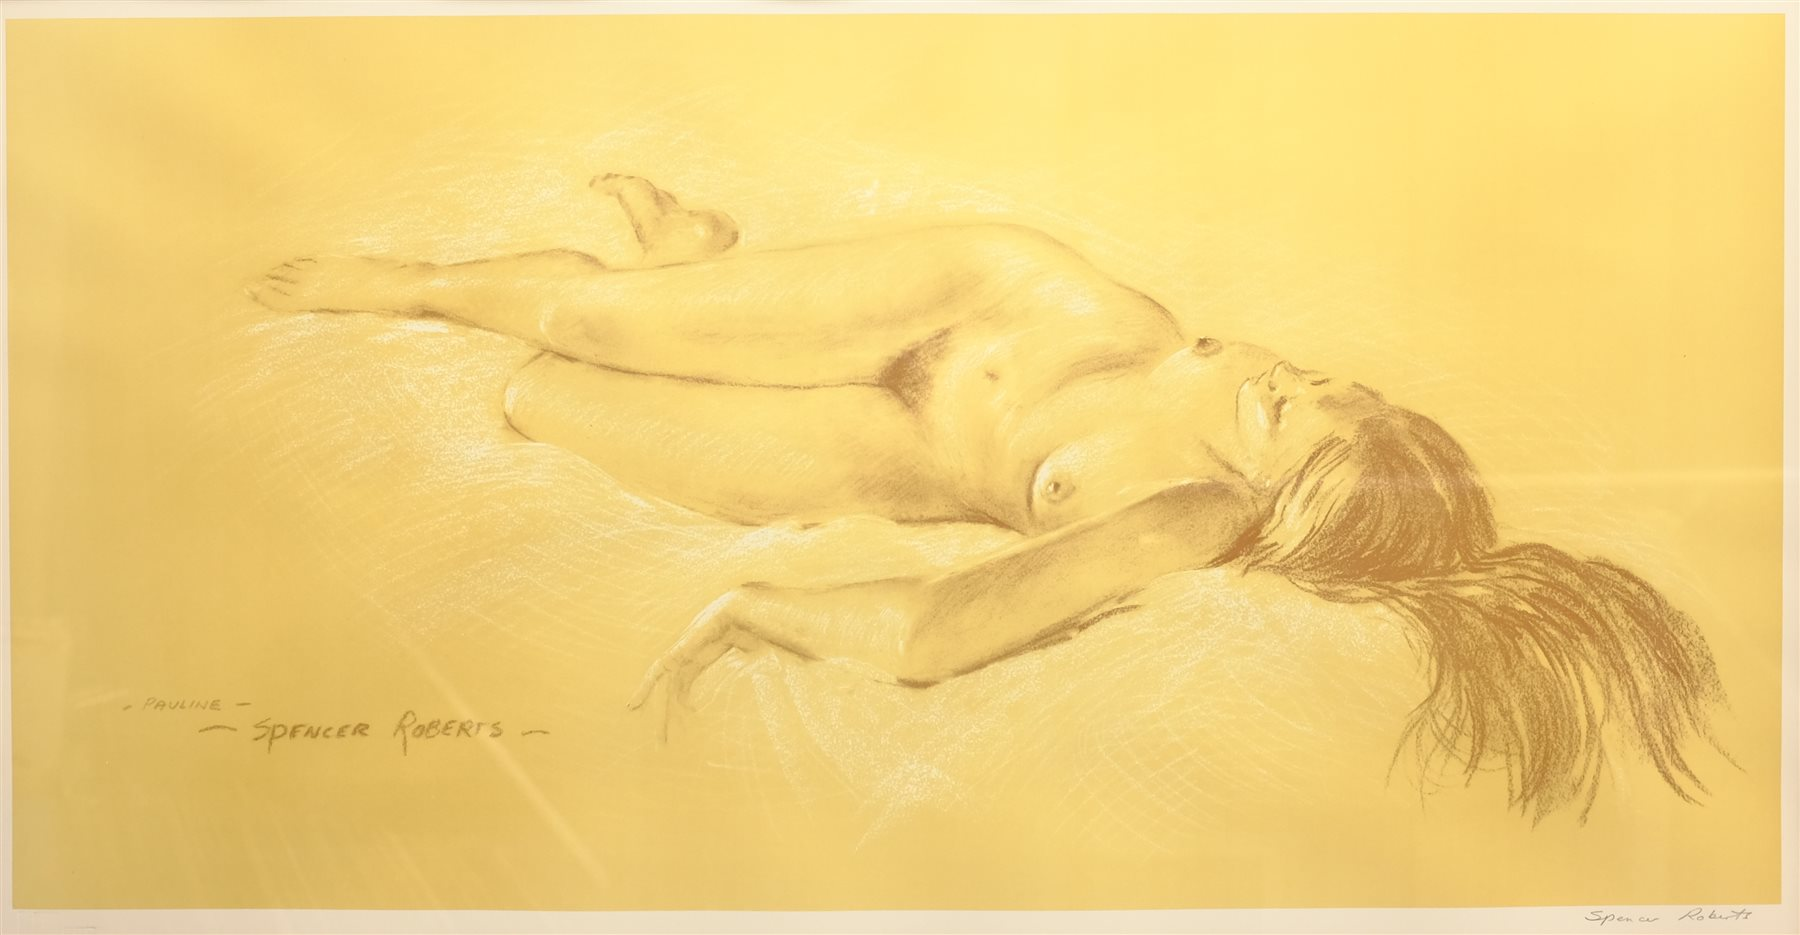 Arthur Spencer Roberts (British 1920-1997): 'Pauline', limited edition print signed in pencil with F - Image 2 of 4